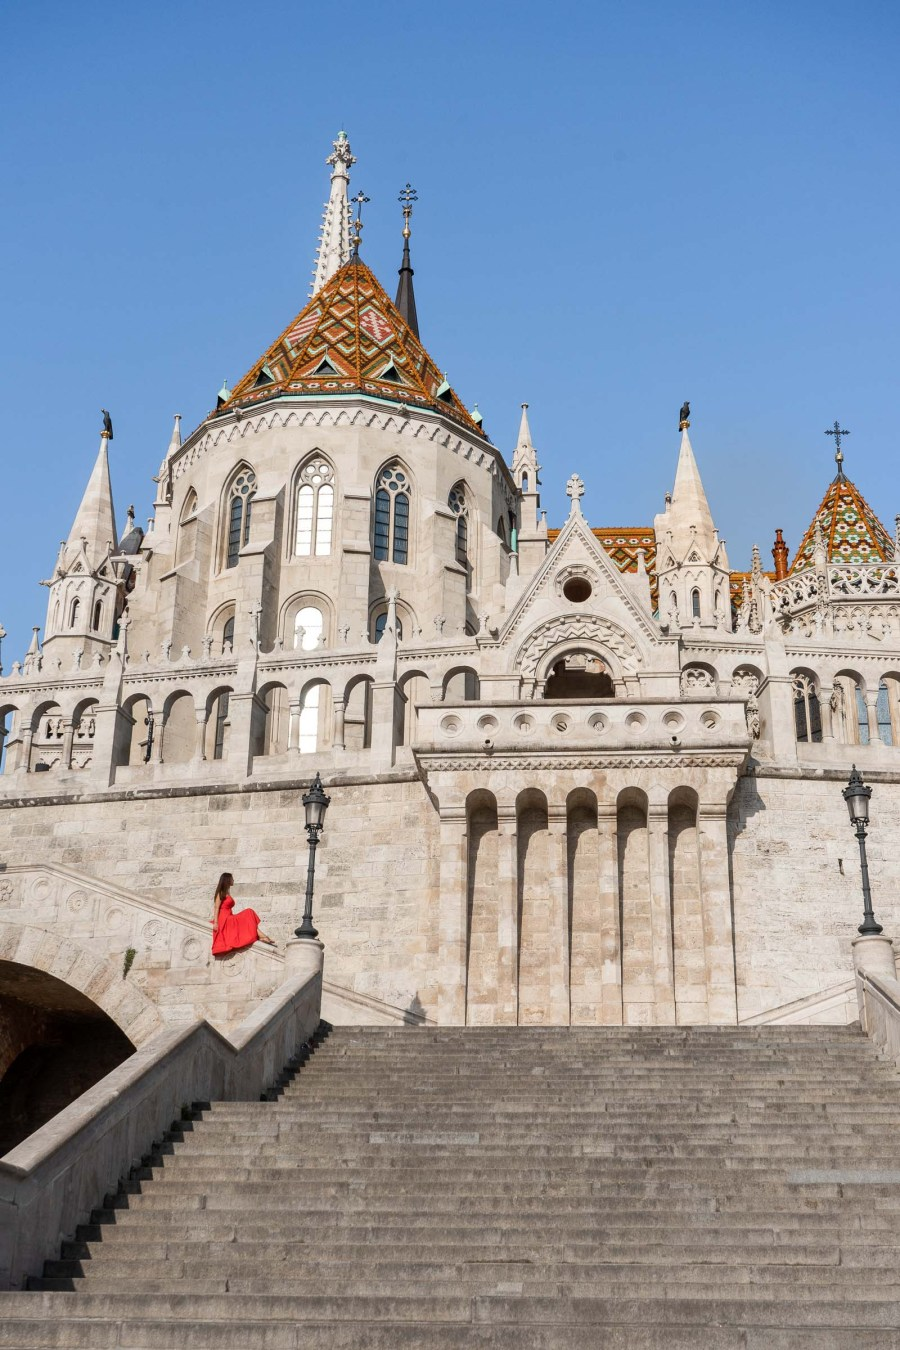 Girl in a red dress sitting at the Fisherman's Bastion in Budapest